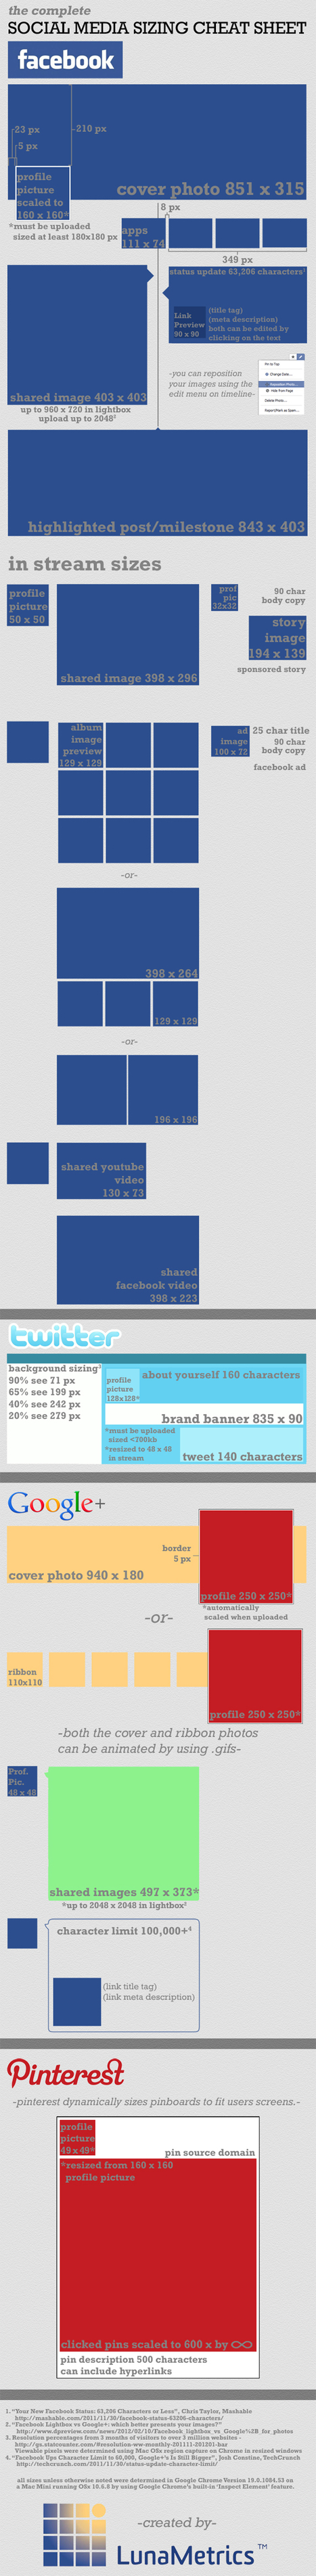 The Ultimate Social Media Image Sizing Guide [2 Infographics] | Social Media Toolbox | Scoop.it